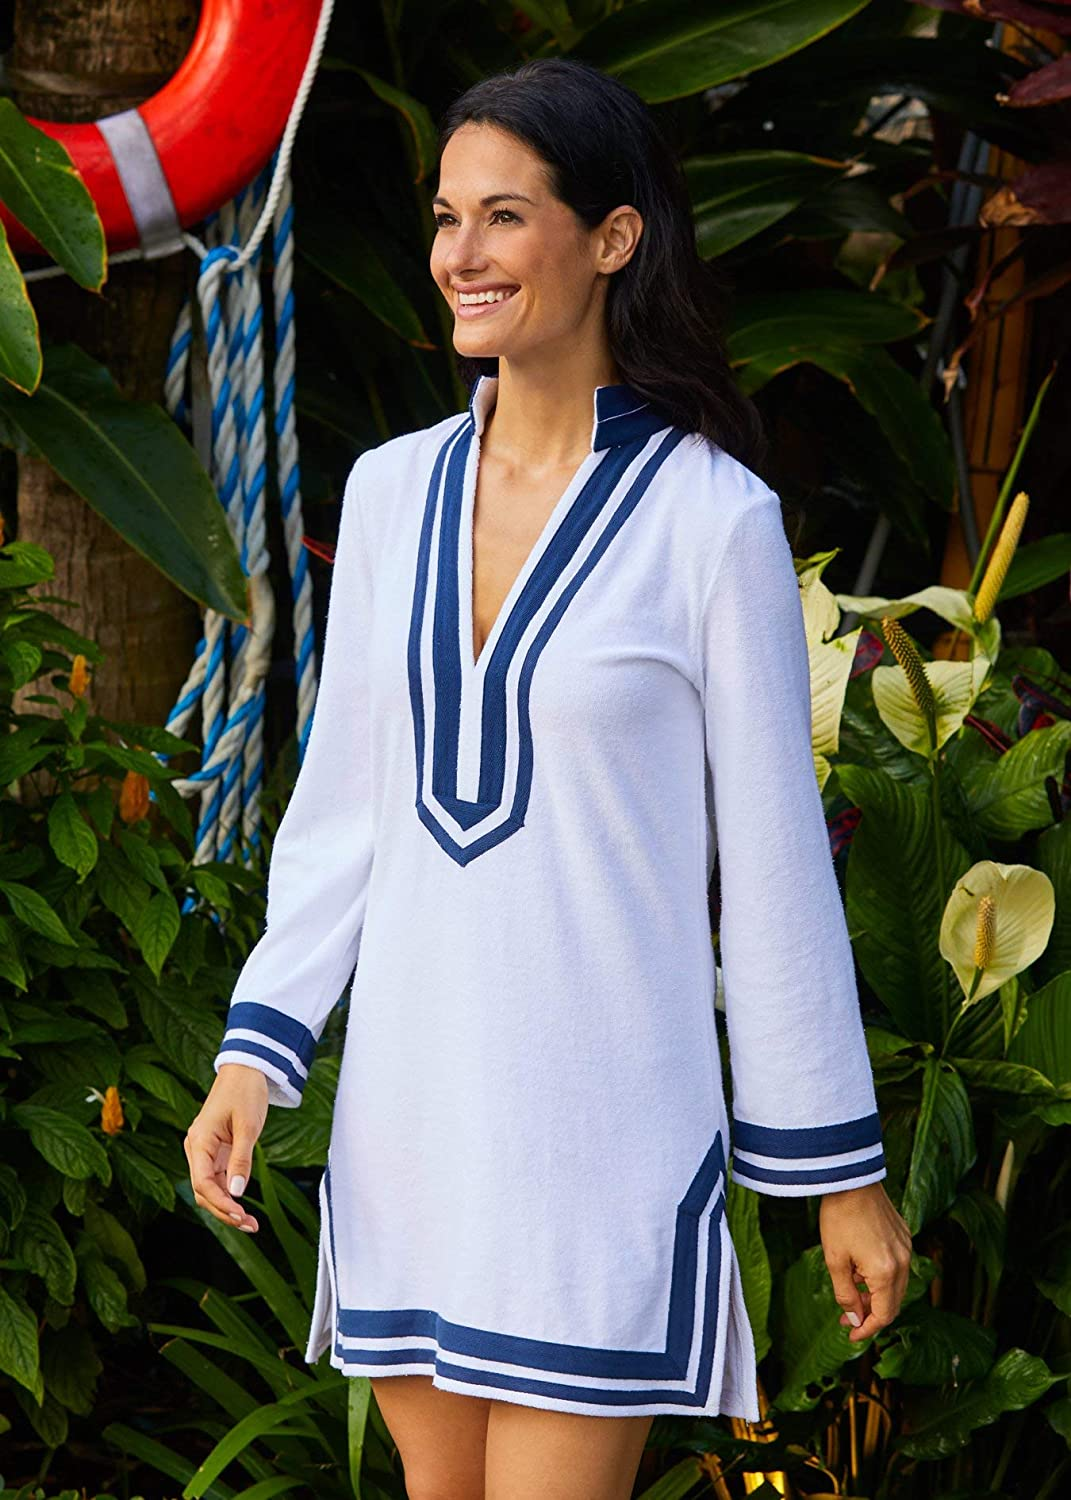 Cabana Life Swim Beach Cover Up White//Navy Striped Trim Extra Soft Terry Tunic Small Size